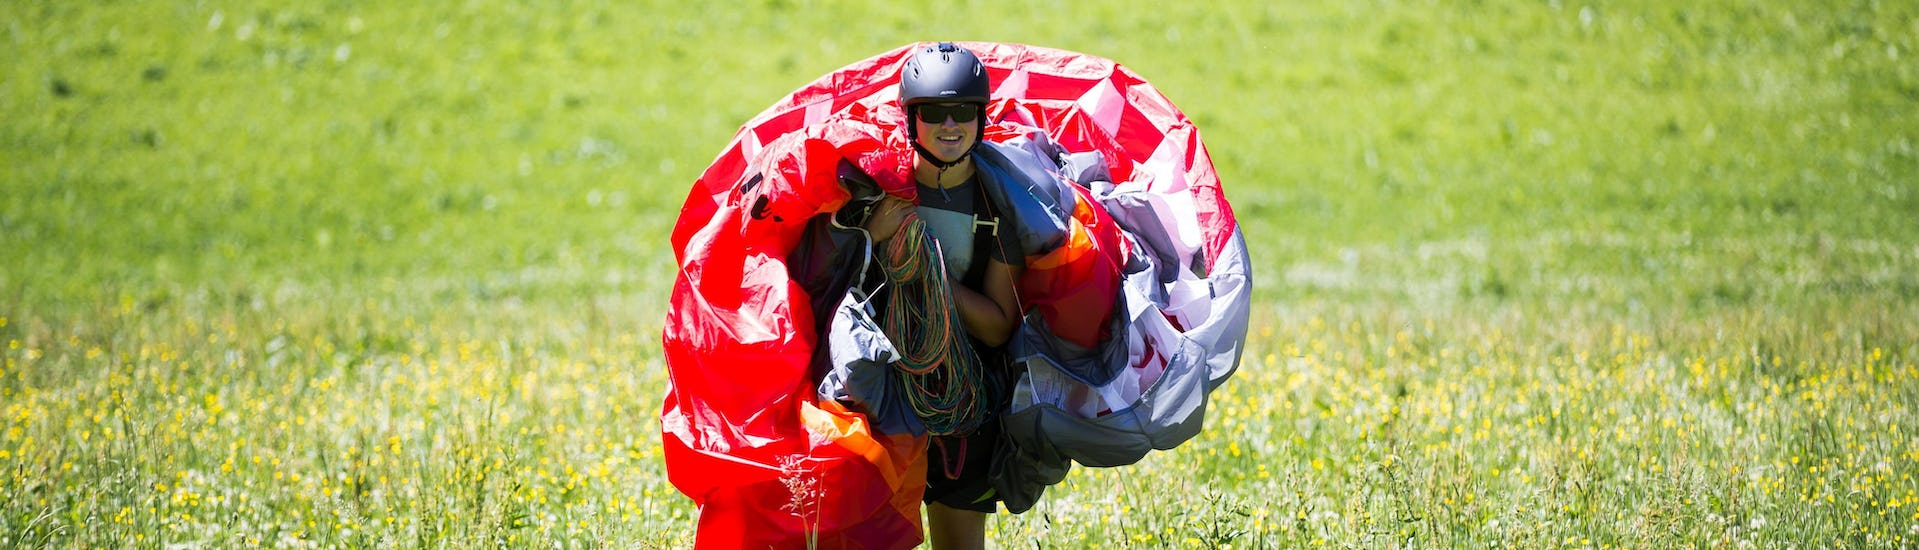 6-day-basic-paragliding-course-in-werfenweng-flugschule-austriafly-hero